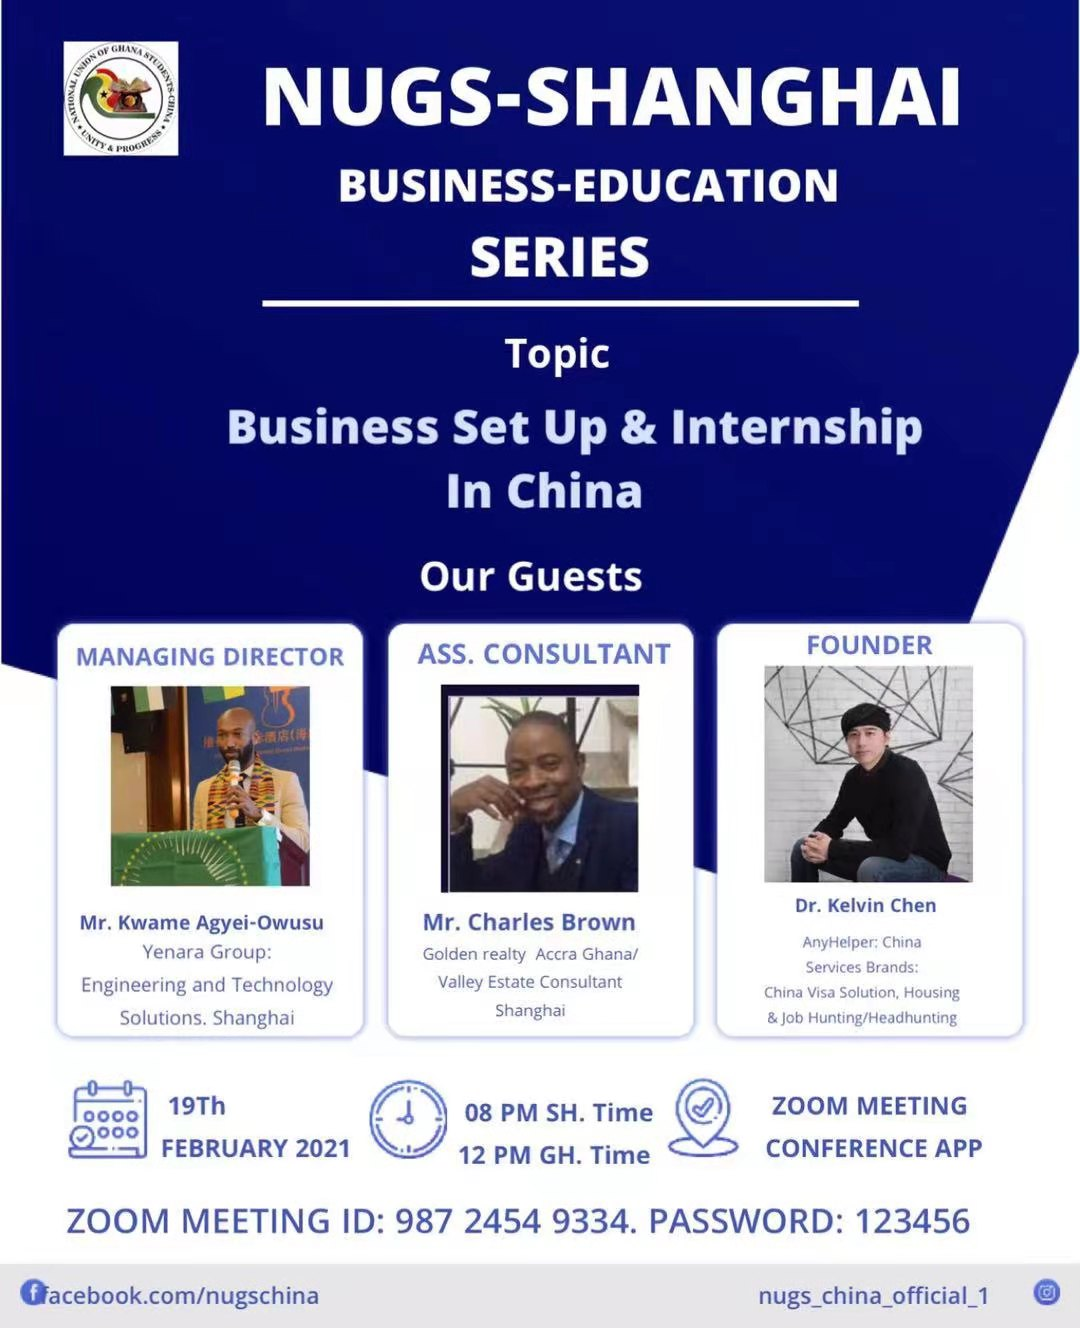 NUGS-SHANGHAI Present BUSINESS-EDUCATION SERIES